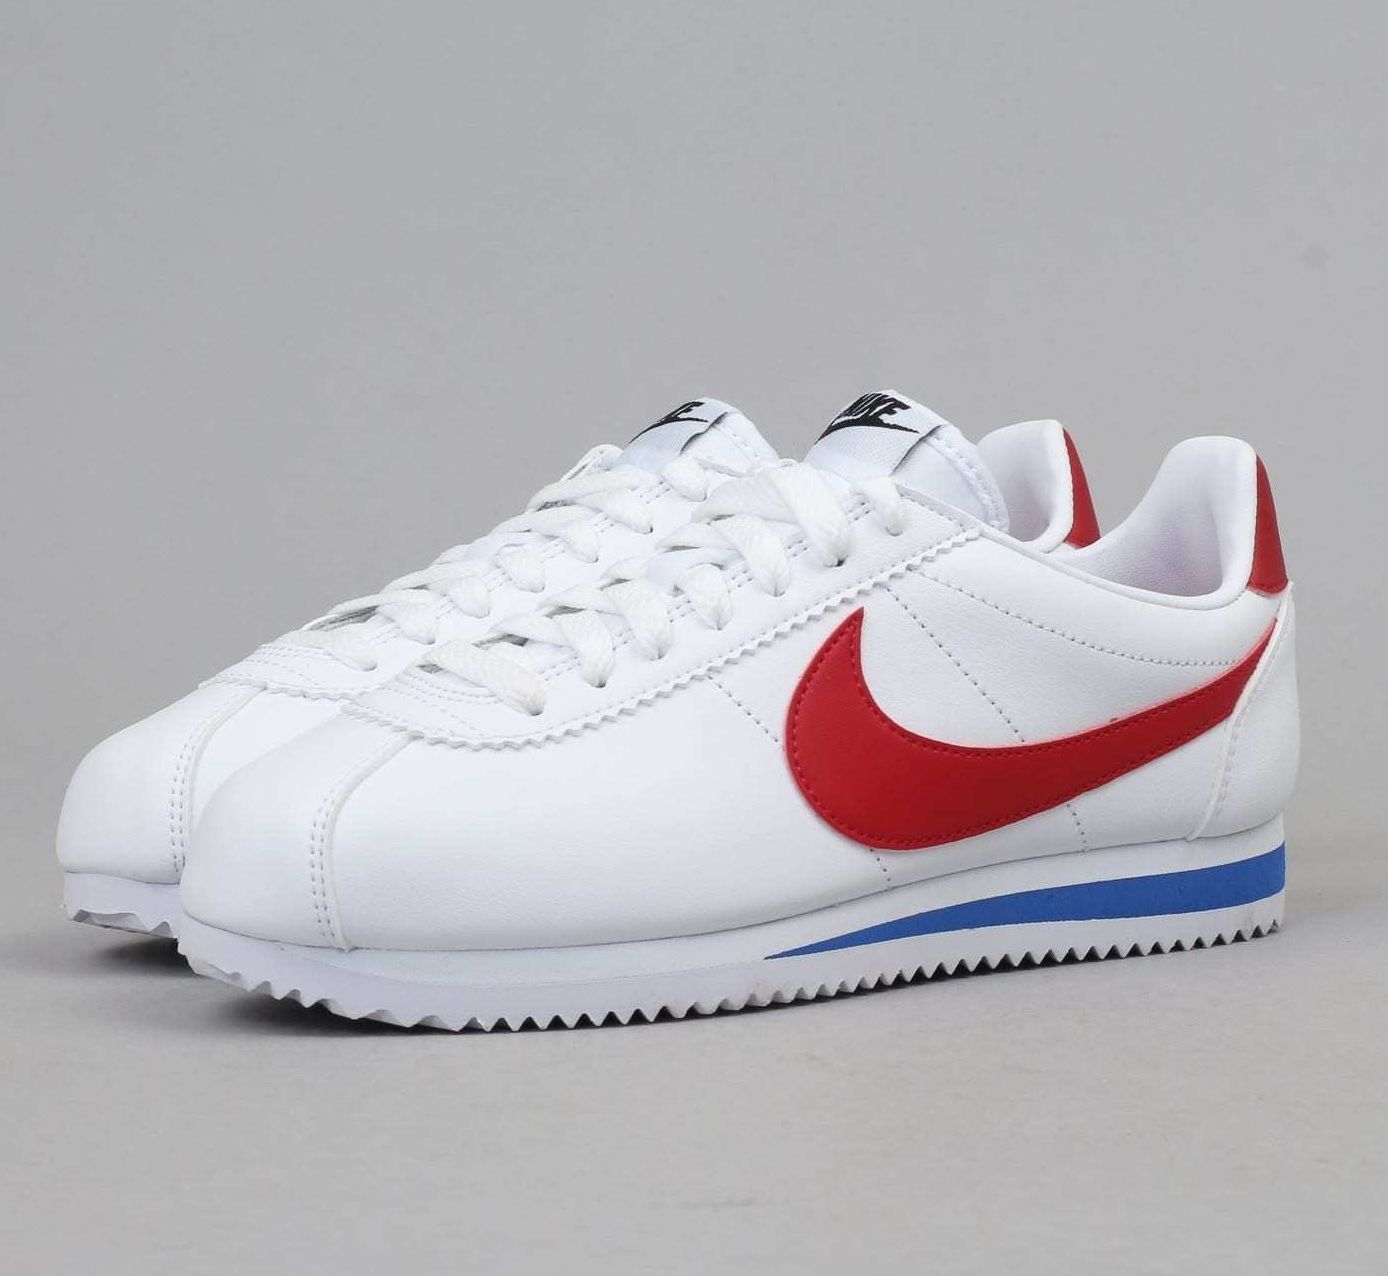 more photos 6face 8acdb nike wmns cortez